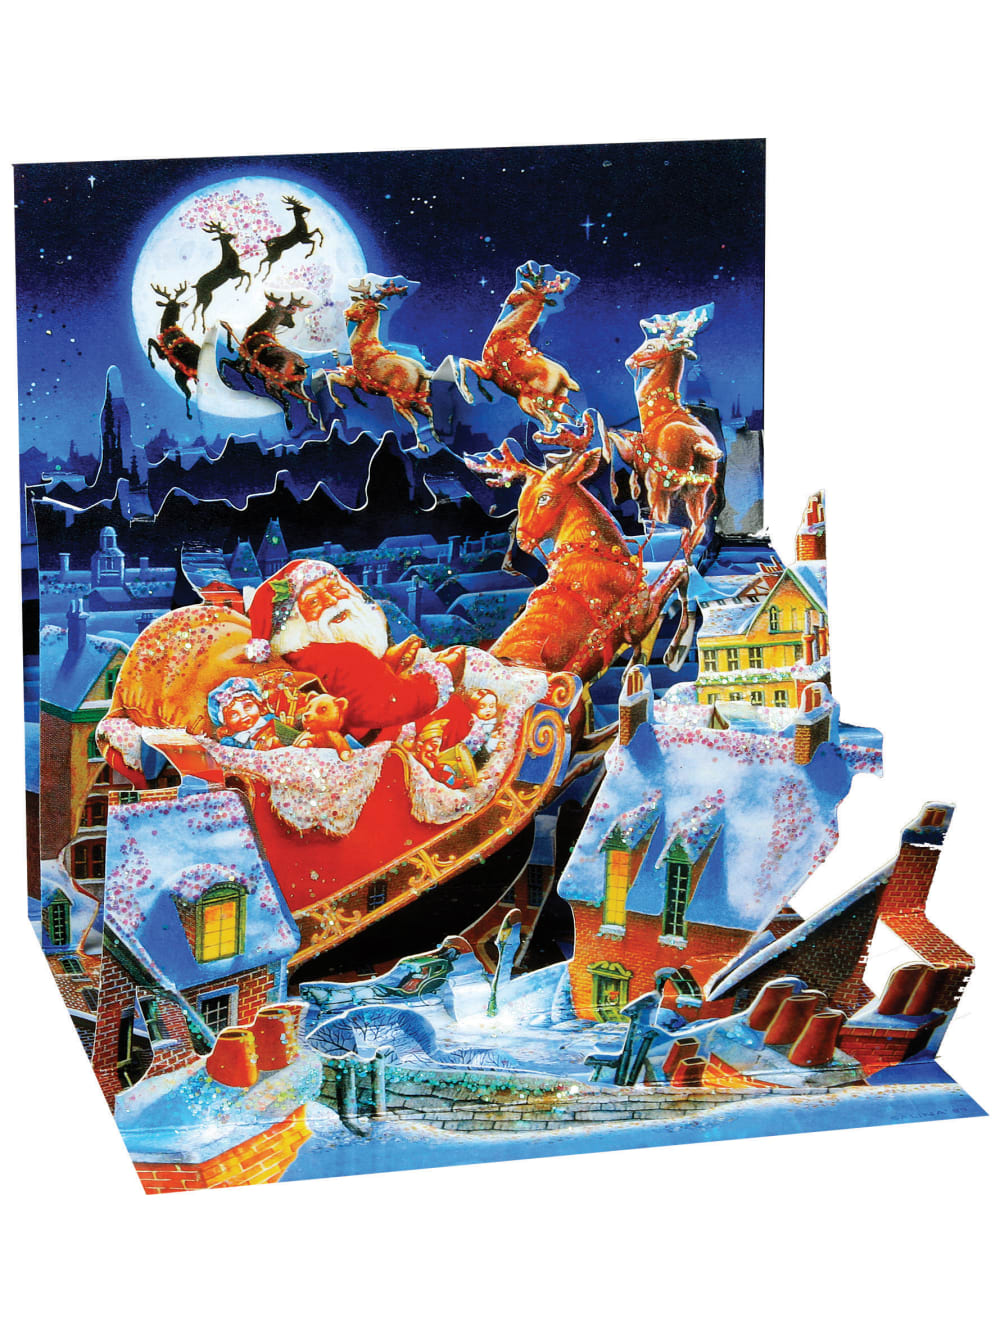 Pack of 5 Sleigh Ride Cards 4x5.5